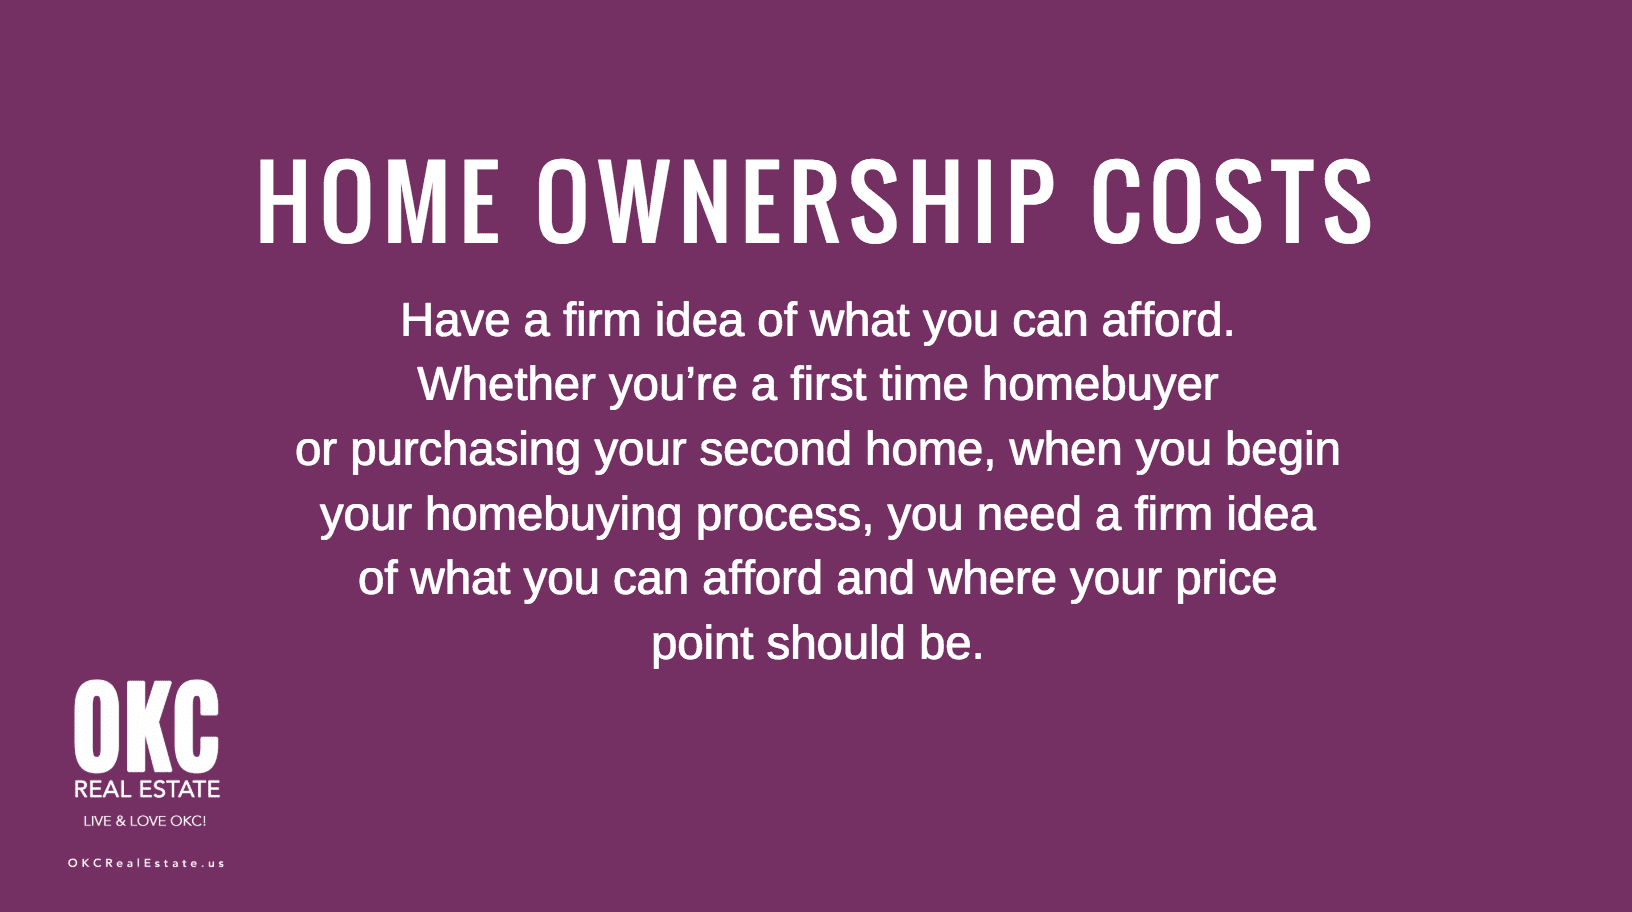 HOME OWNERSHIP COSTS - OKC REAL ESTATE